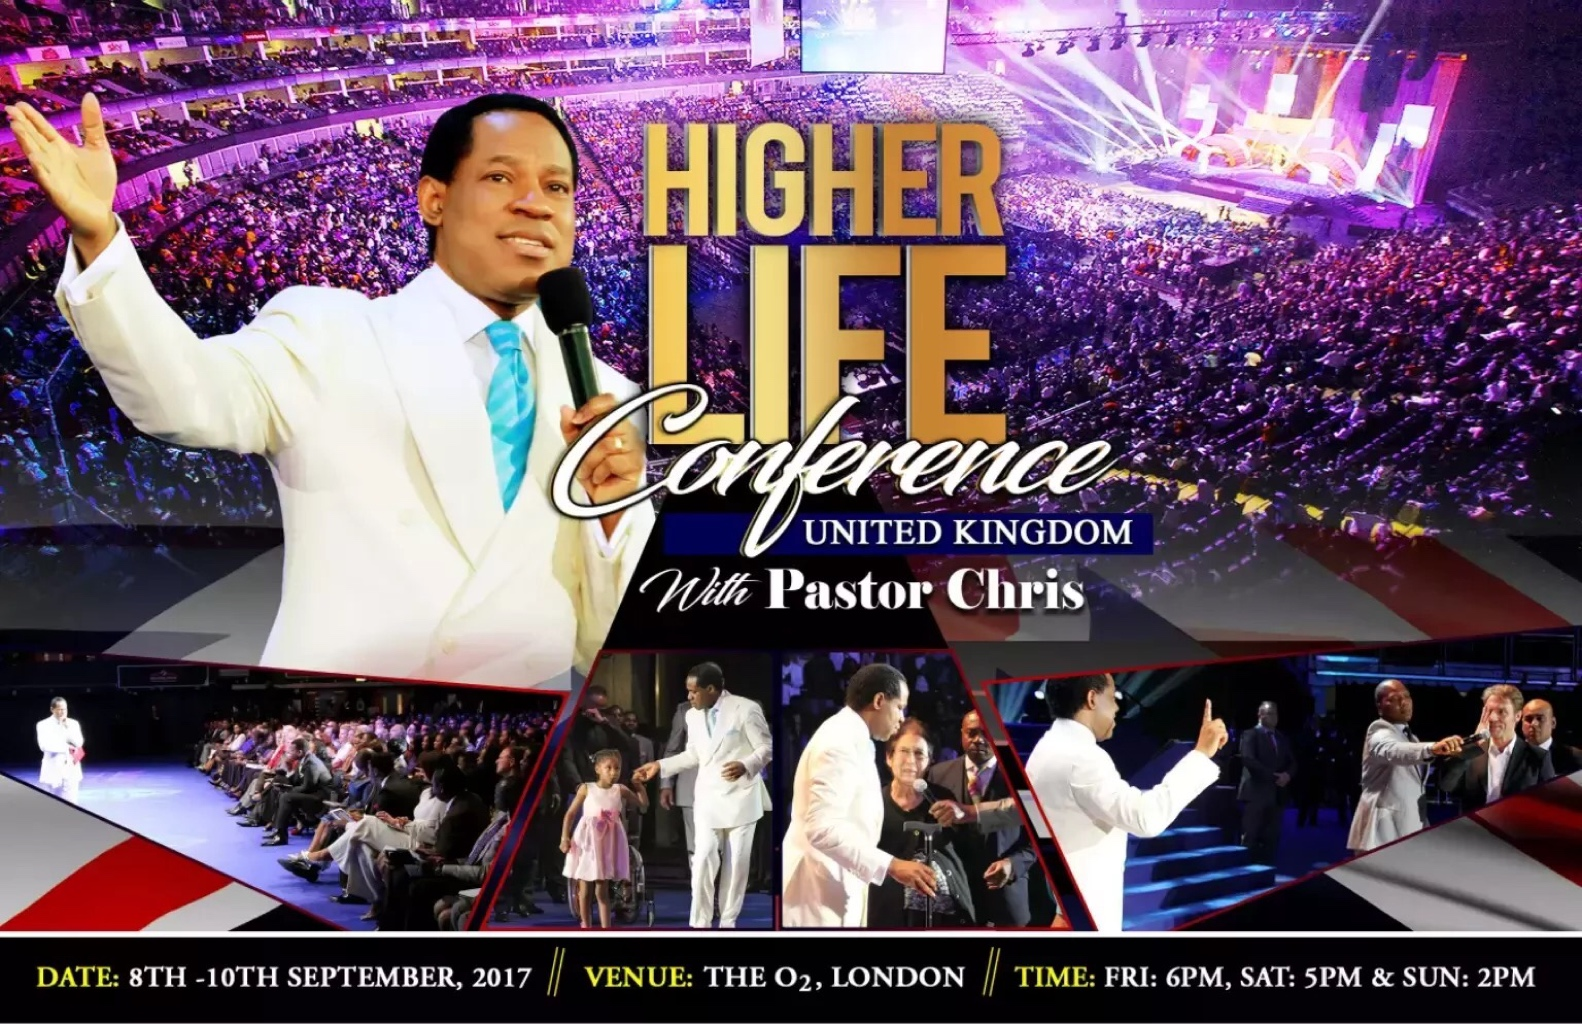 #Intervention #HLCUKwithPastorChris